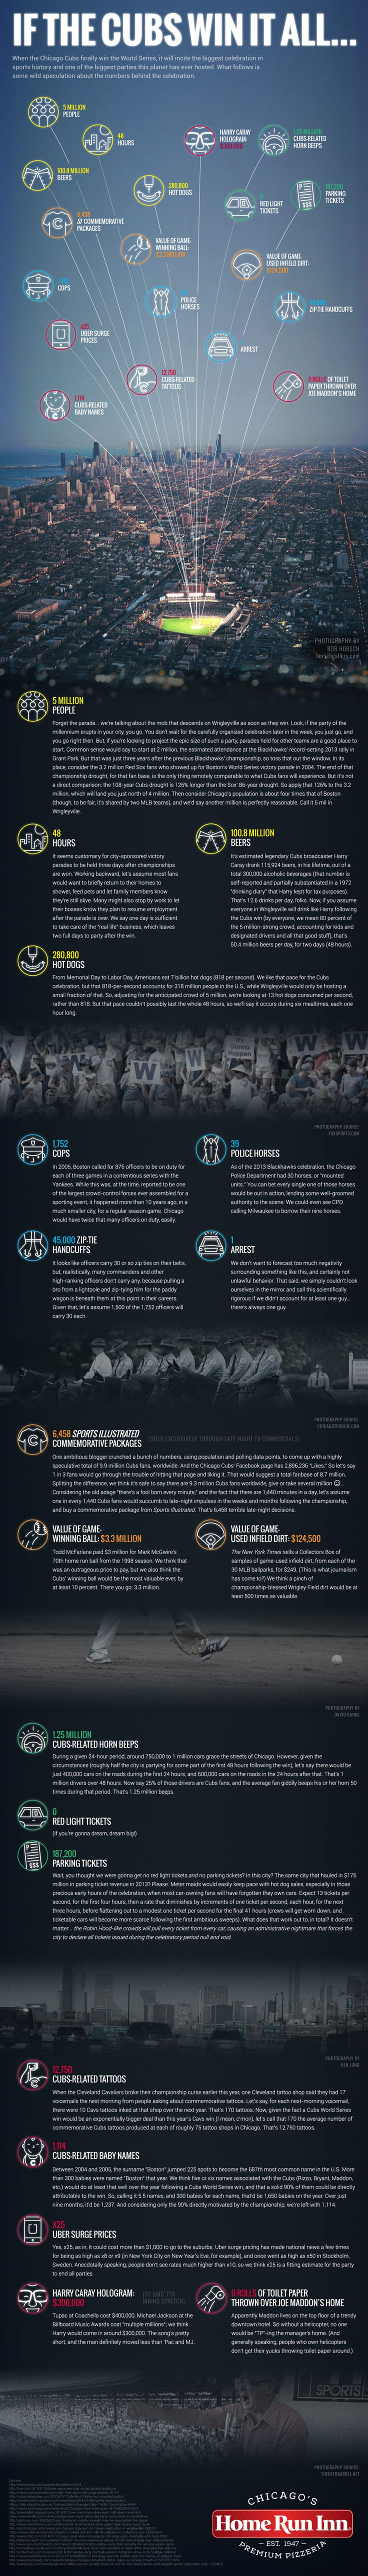 A Look at a Potential Chicago Cubs World Series Celebration #Infographic #Sports